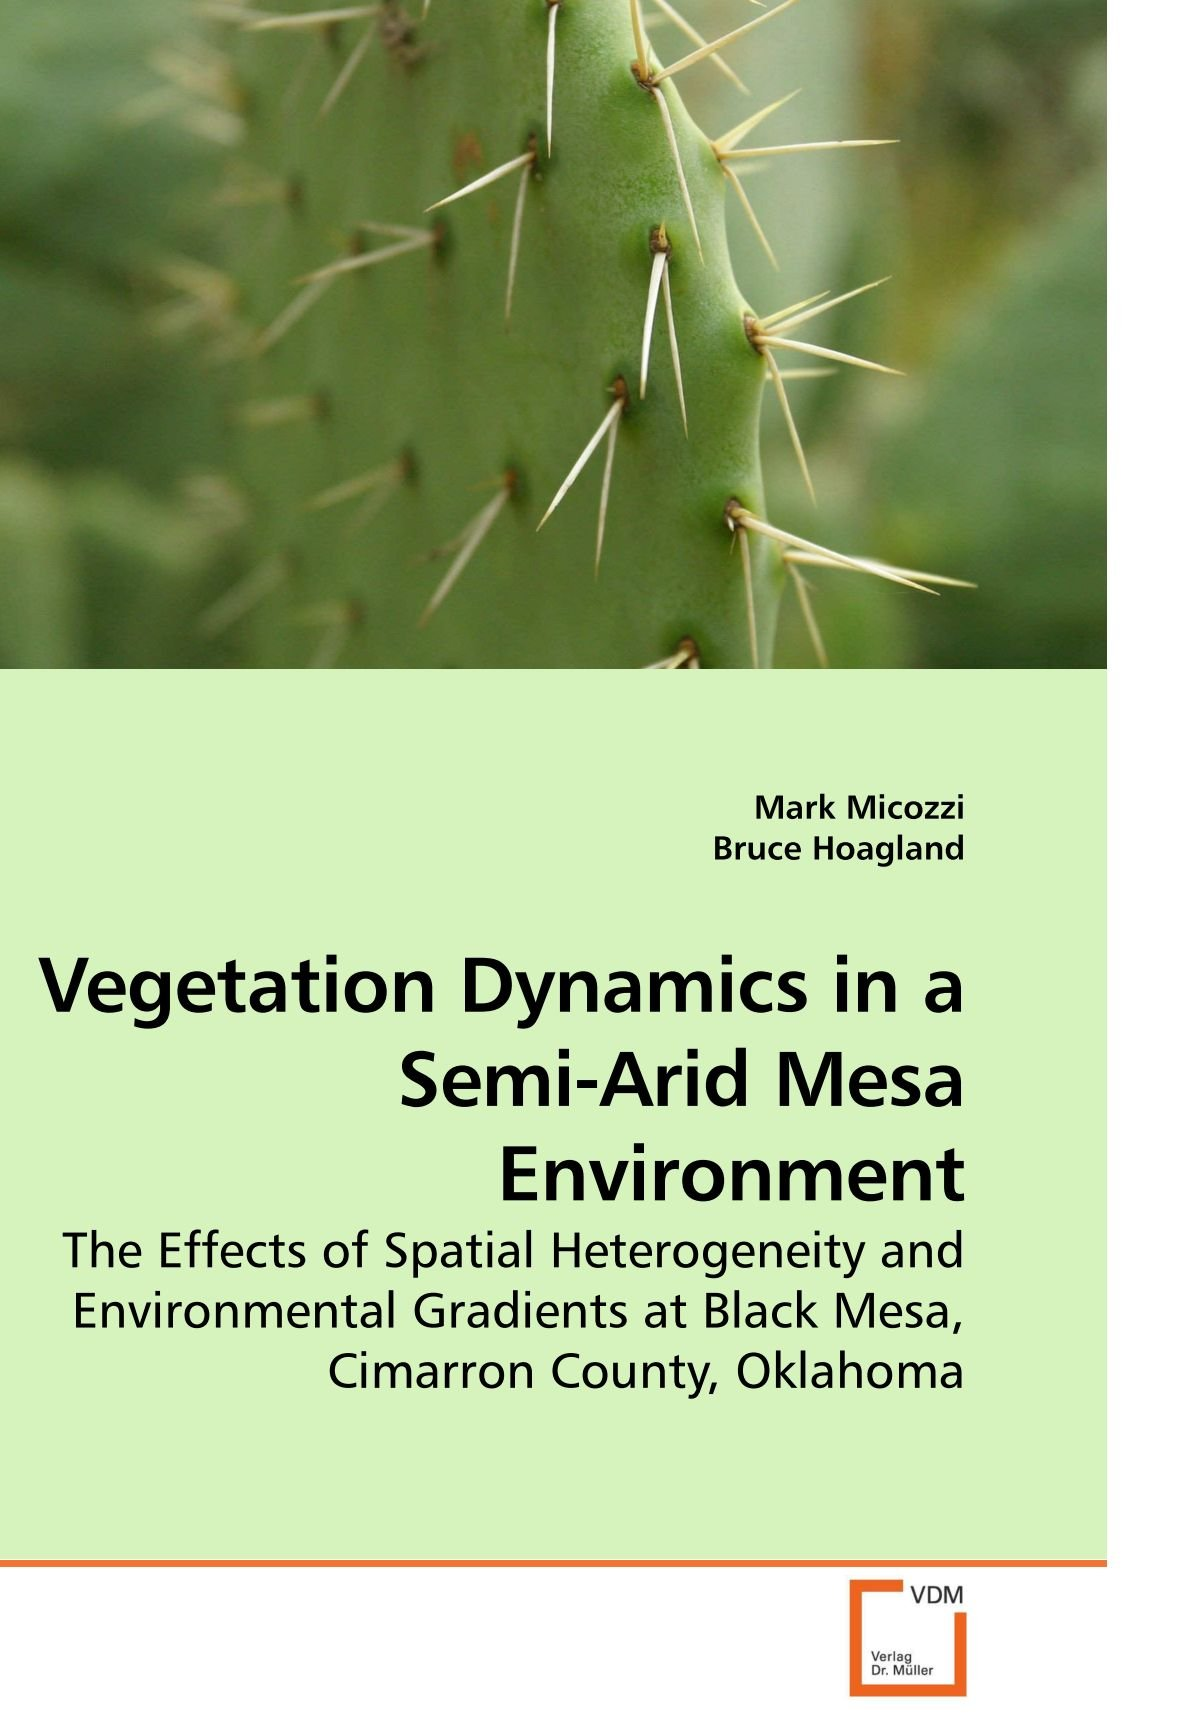 Read Online Vegetation Dynamics in a Semi-Arid Mesa Environment: The Effects of Spatial Heterogeneity and Environmental Gradients at Black Mesa, Cimarron County, Oklahoma PDF